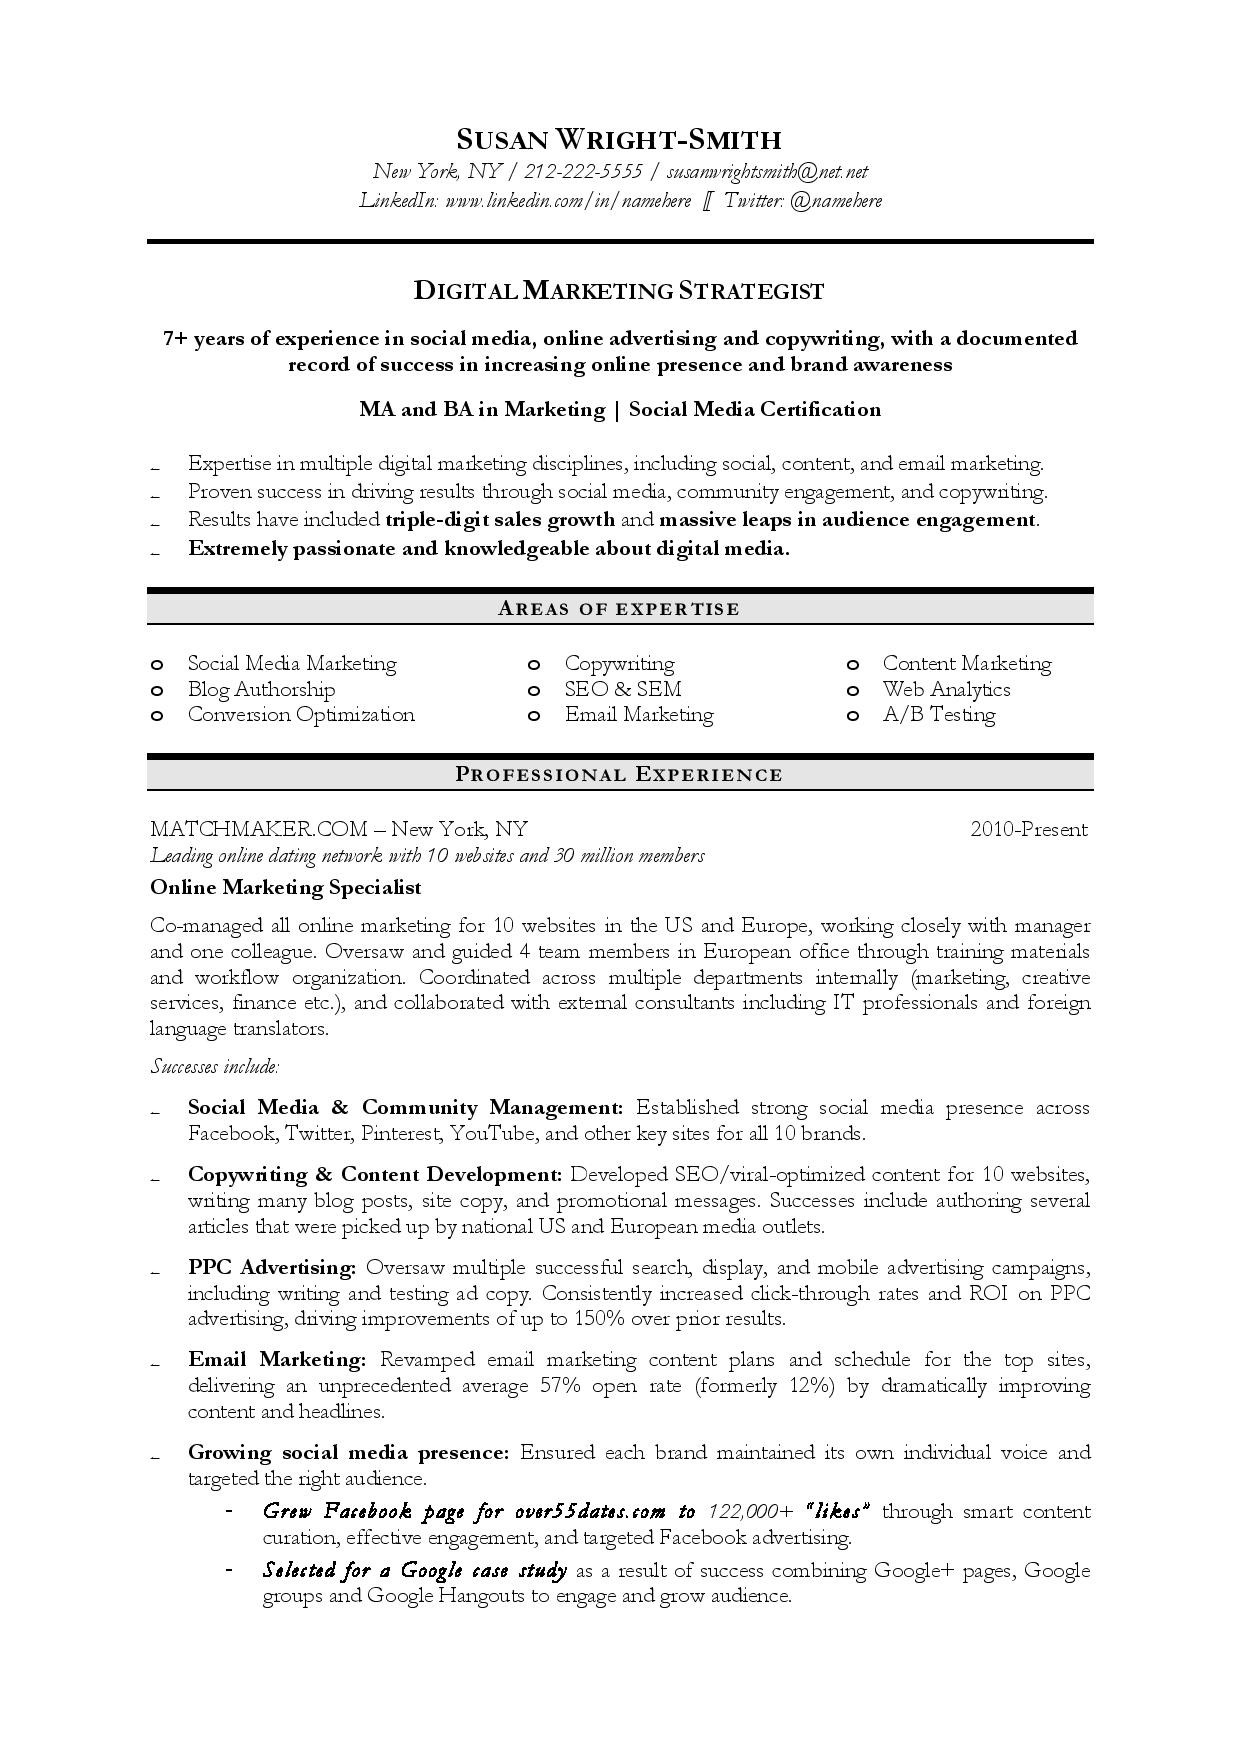 10 Marketing Resume Samples Hiring